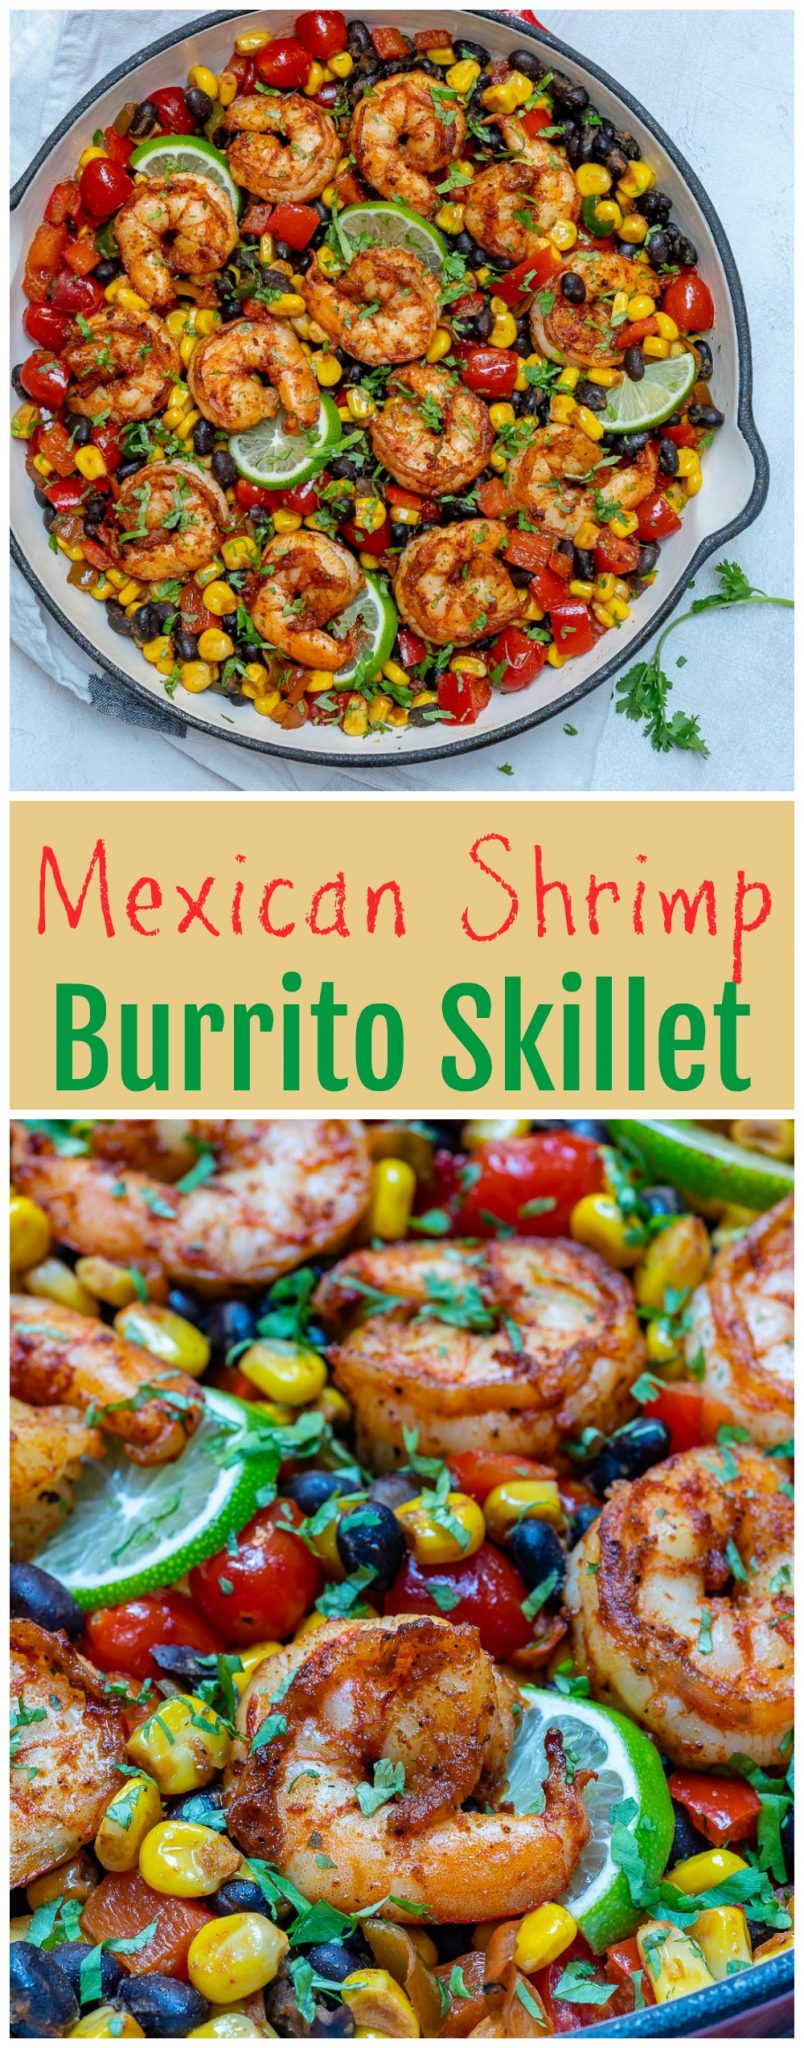 One-Pan Shrimp Burrito Skillet is Great for Clean Eating Meal Prep!